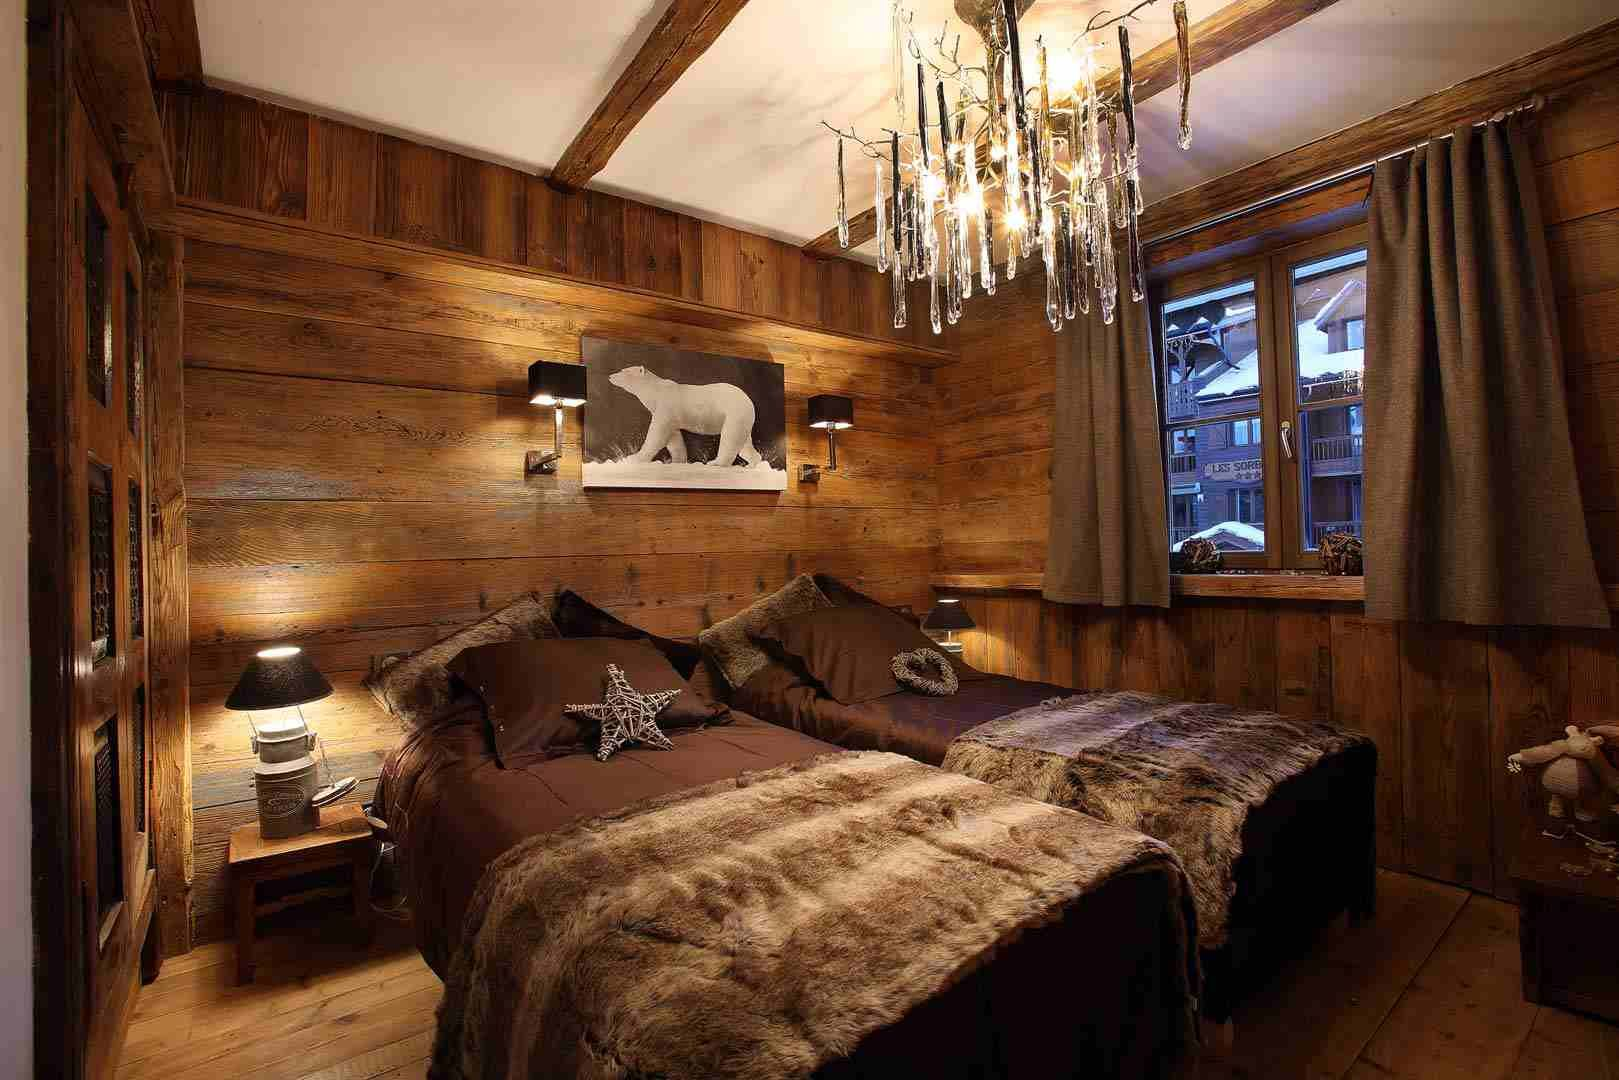 d co int rieur style chalet id es pour atmosph re chaleureuse rev tement en bois revetement. Black Bedroom Furniture Sets. Home Design Ideas